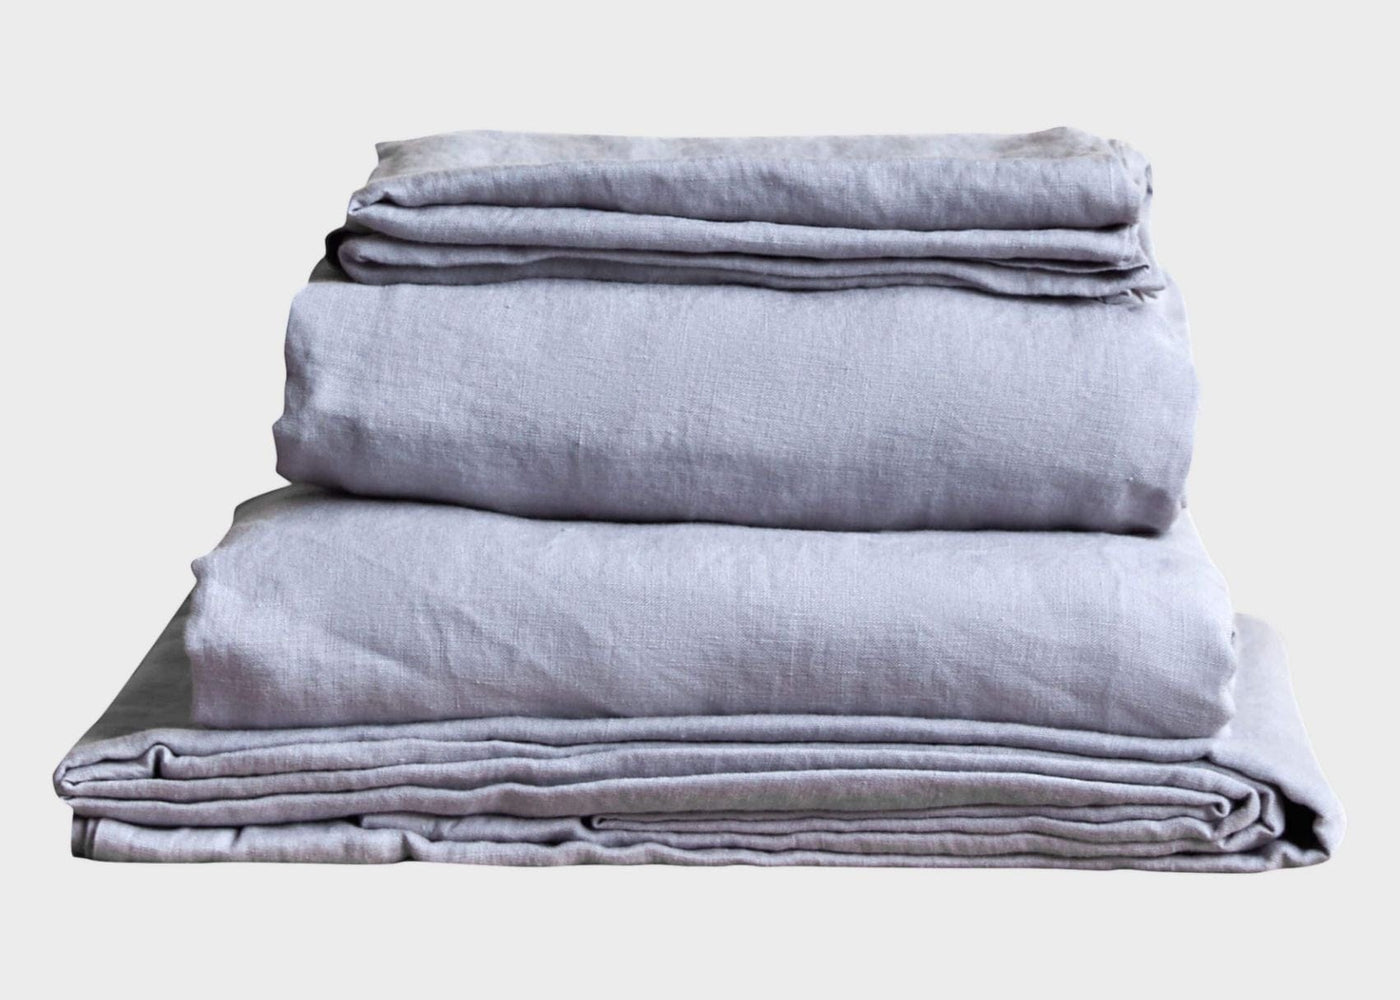 Stonewashed Linen Sheet set - Light Grey